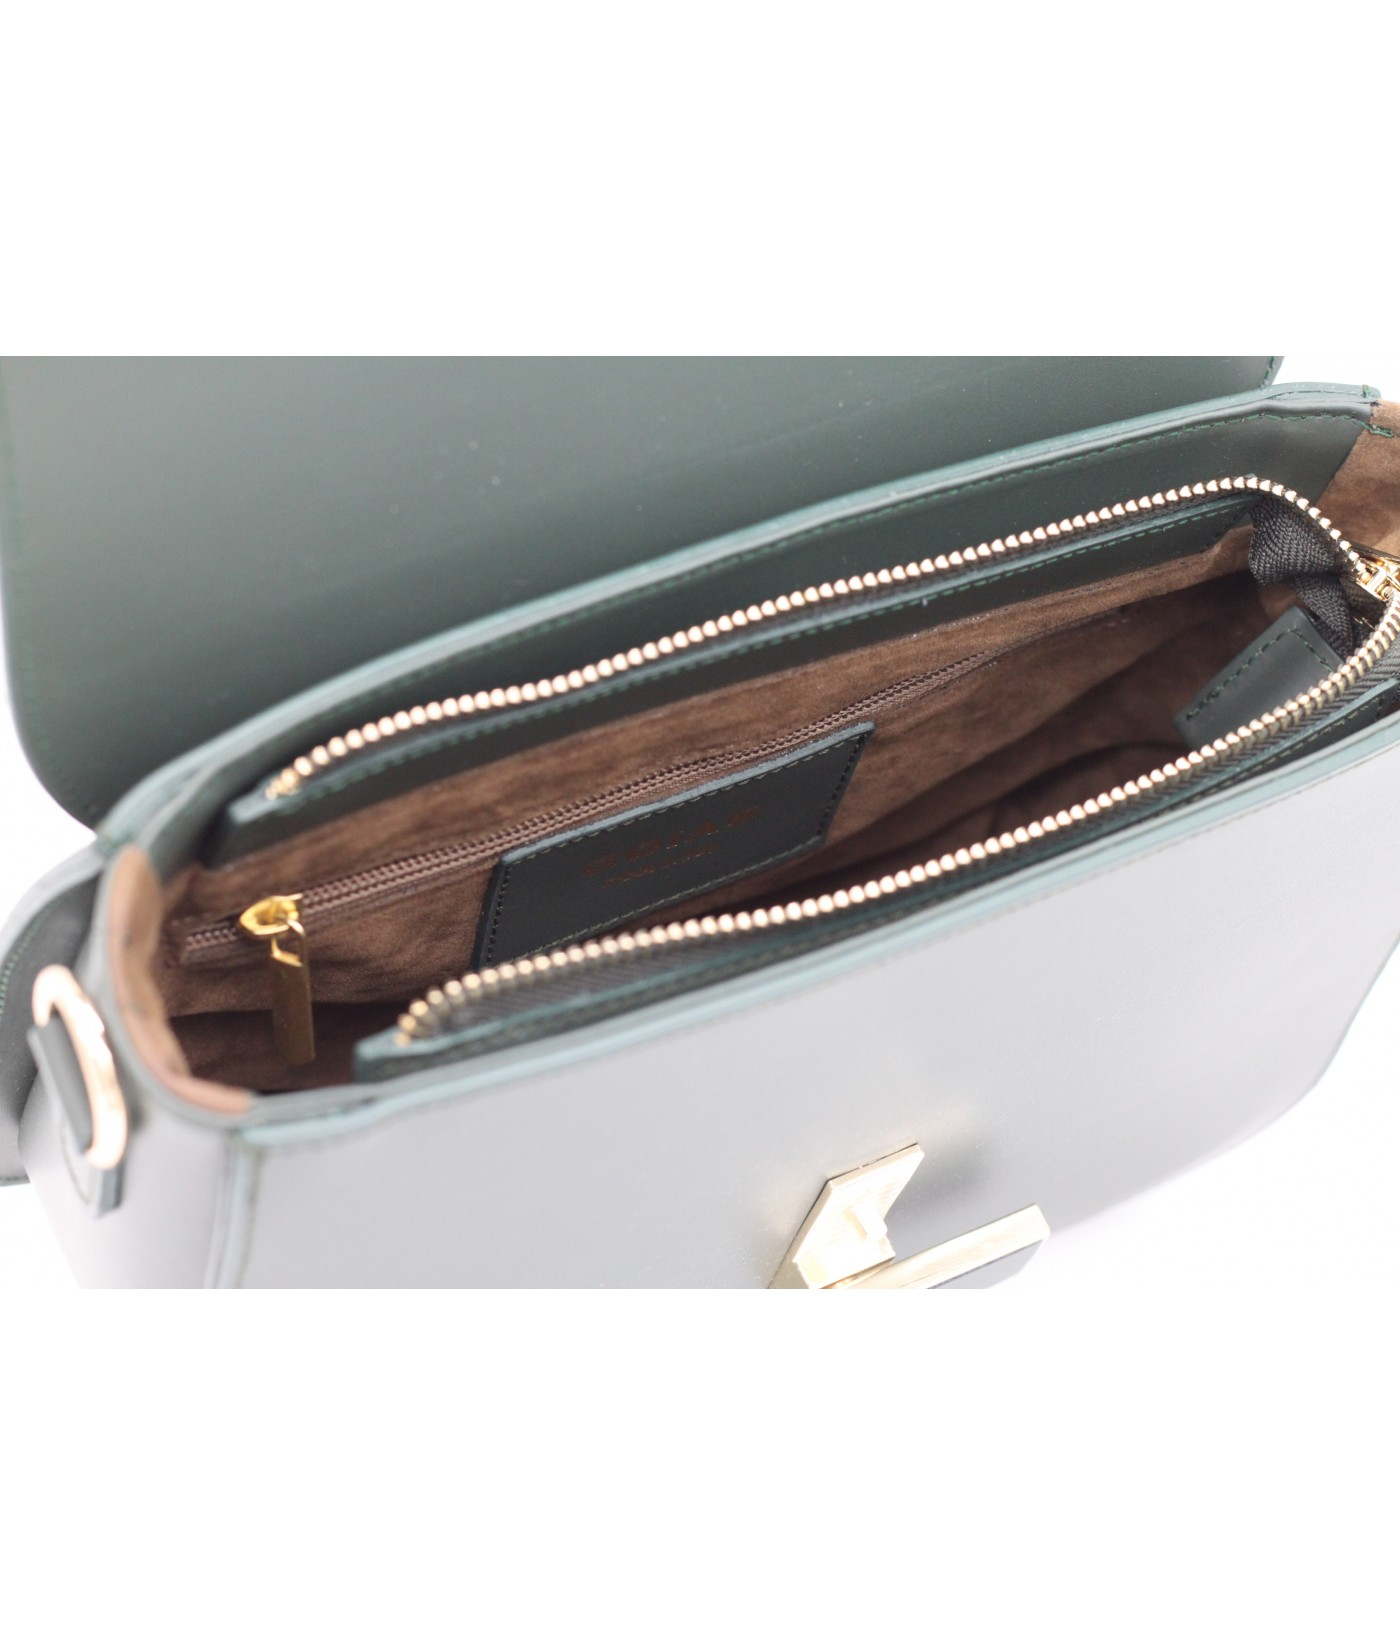 GOIAS Box Bag in Ruga leather(Forest Green)